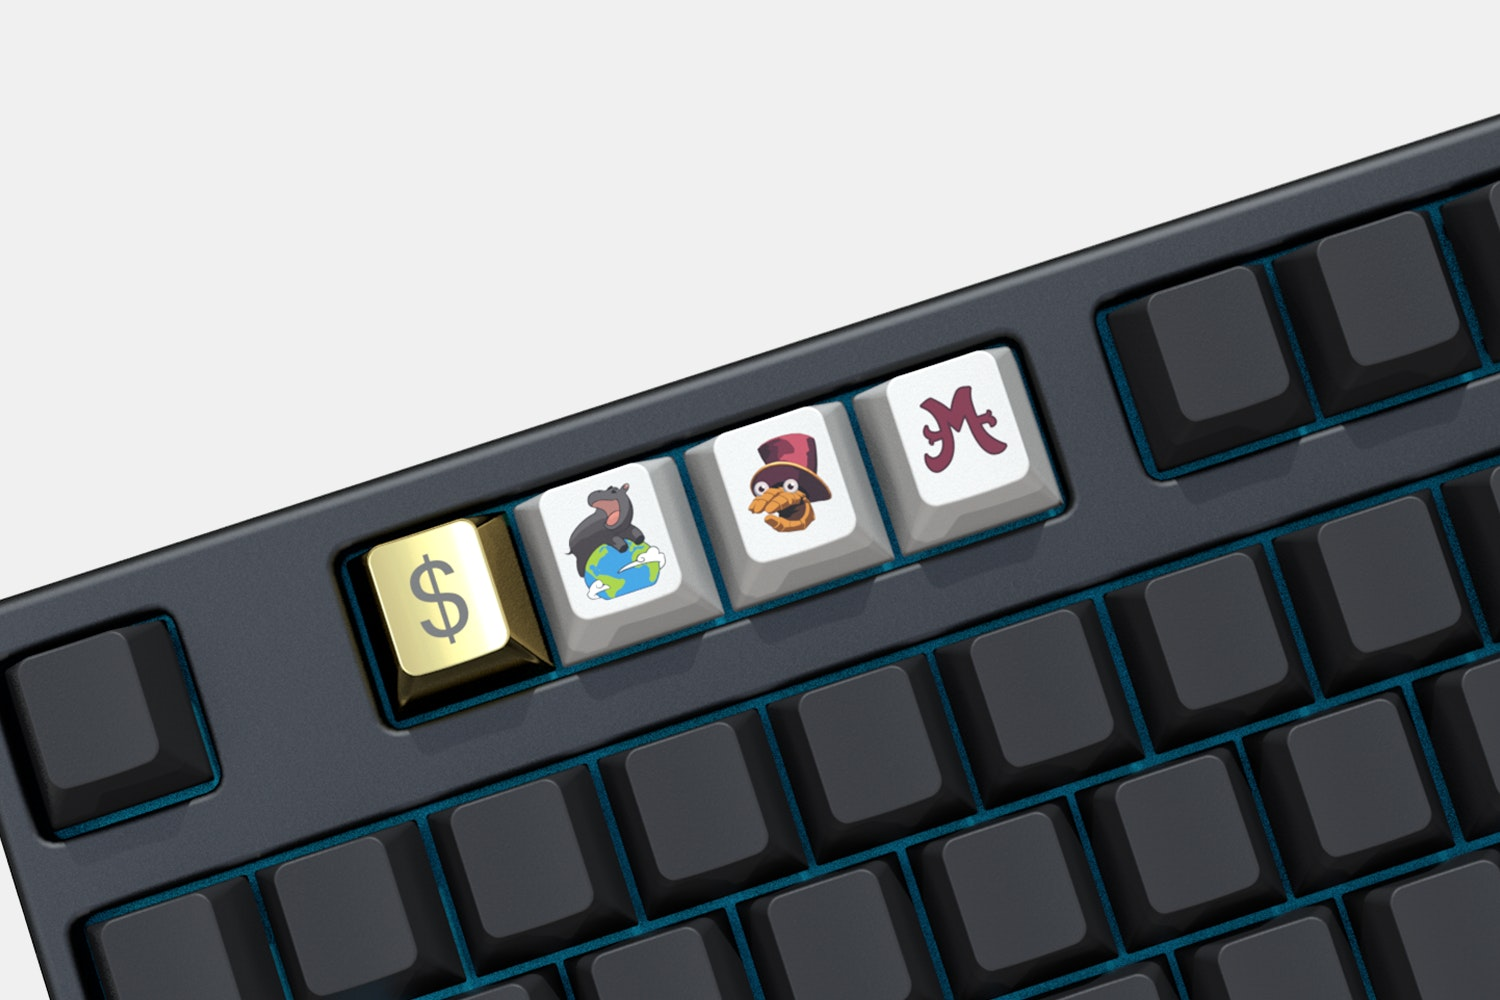 Massdrop x Moonduck Midas Mode Novelty Keycaps